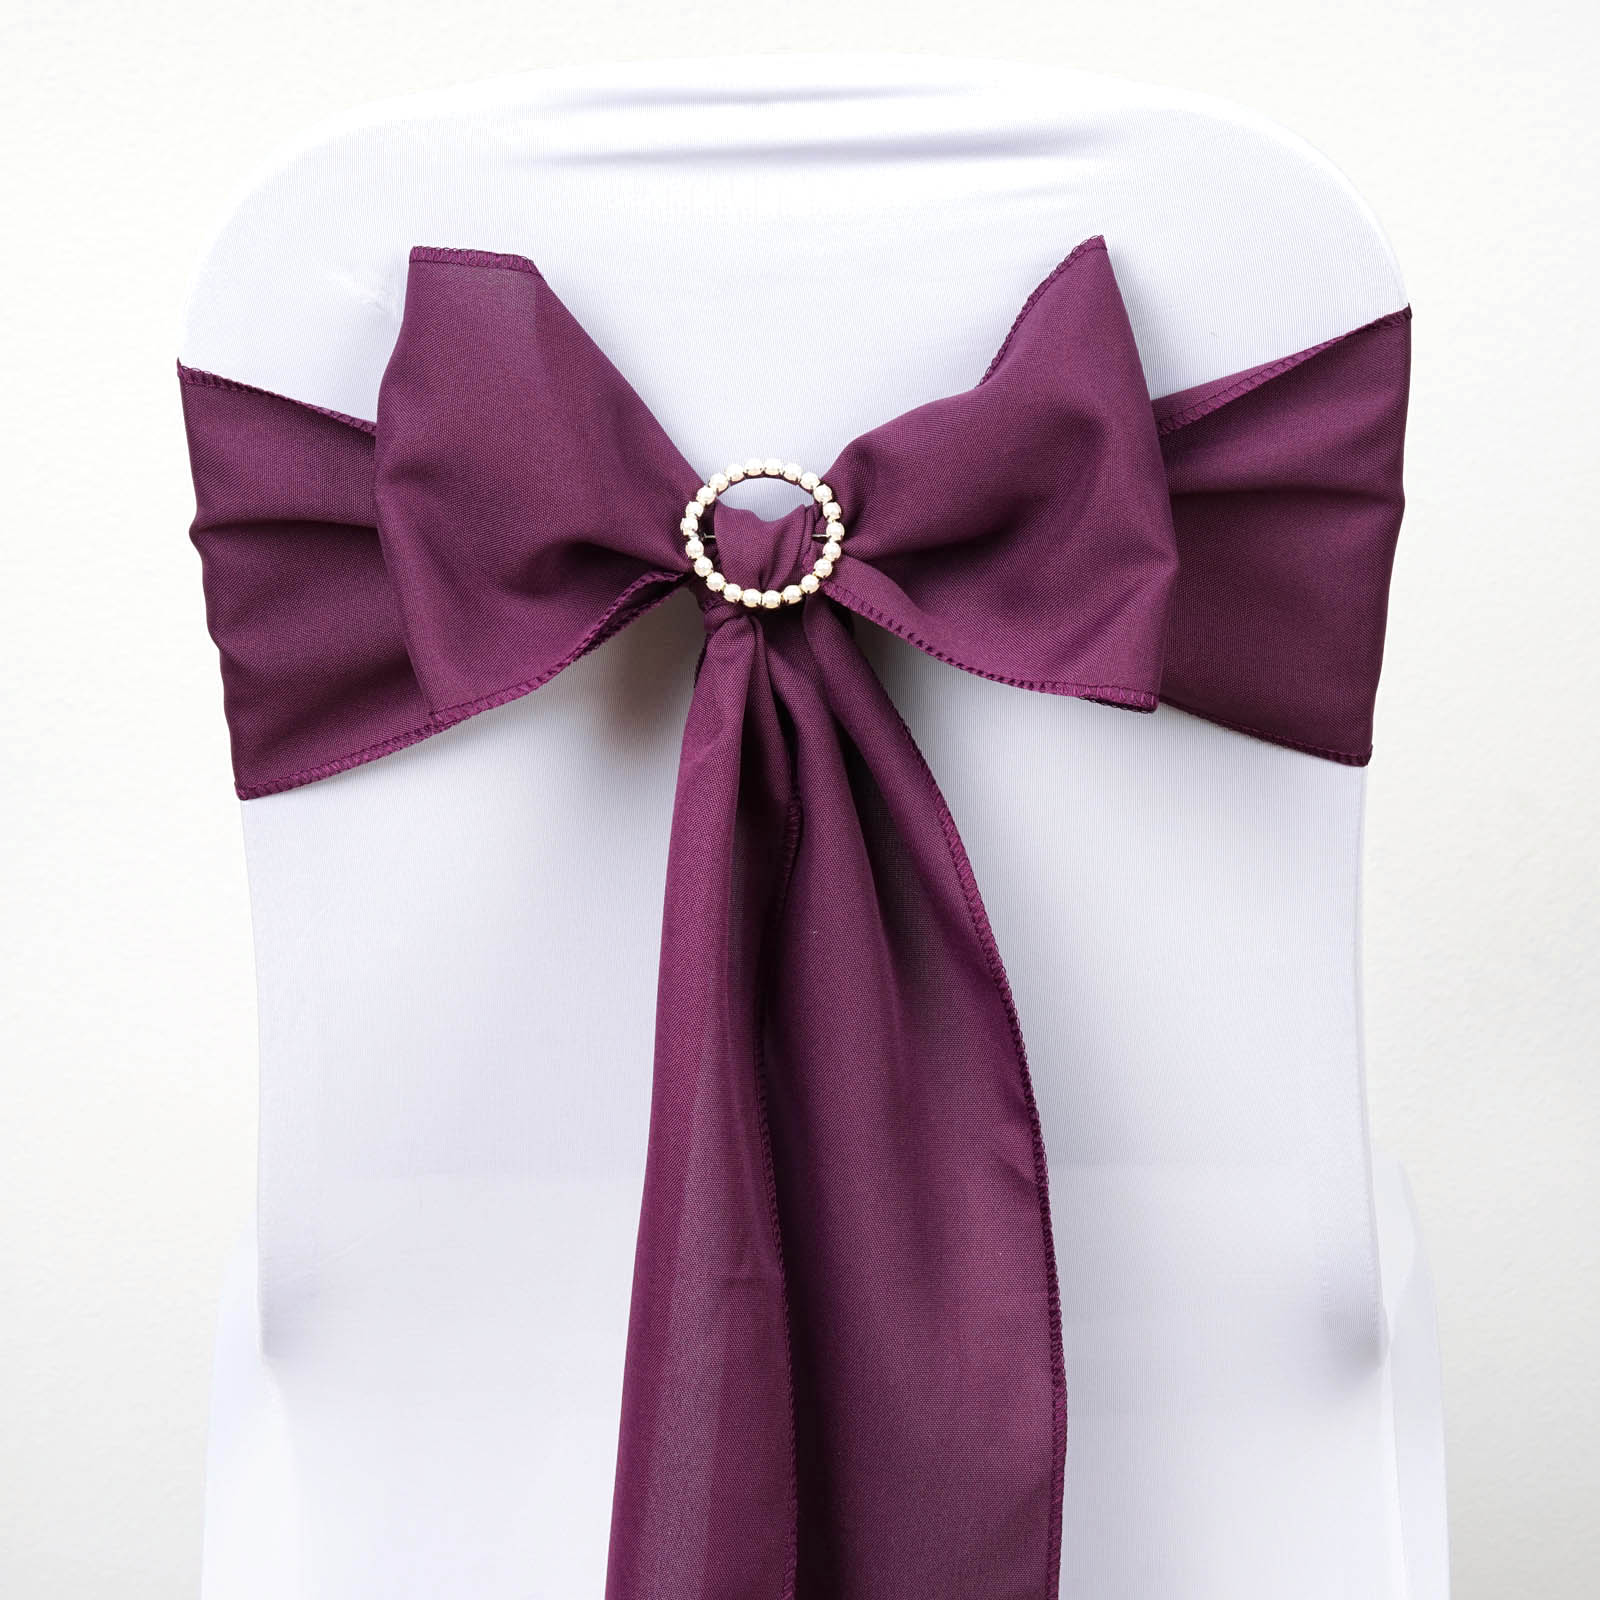 100 Polyester CHAIR SASHES Bows Ties Wedding Party Supplies Wholesale Discount